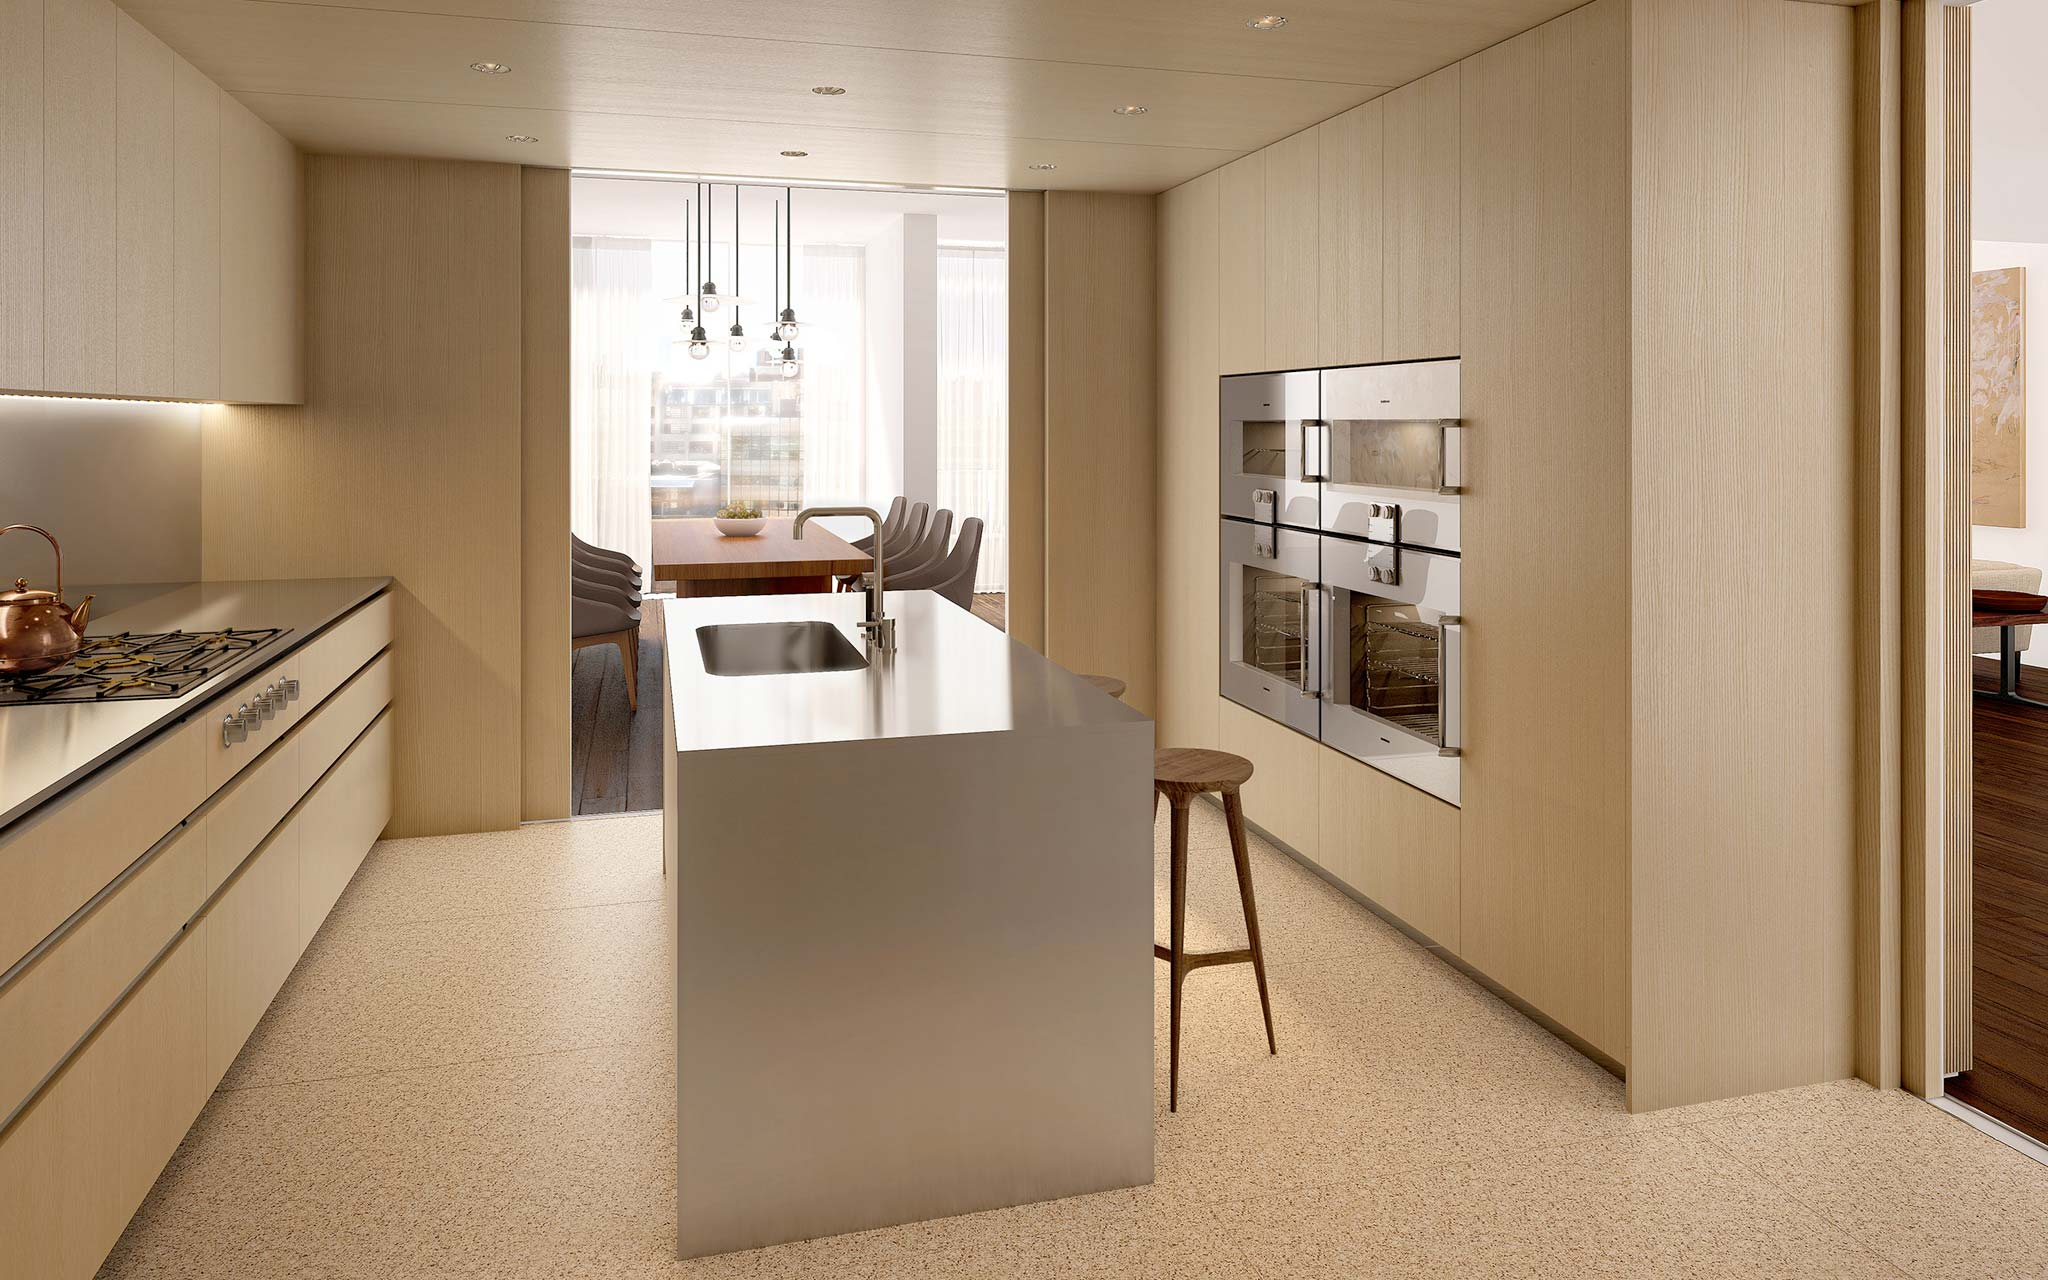 West Chelsea Condominium: Modern Kitchen